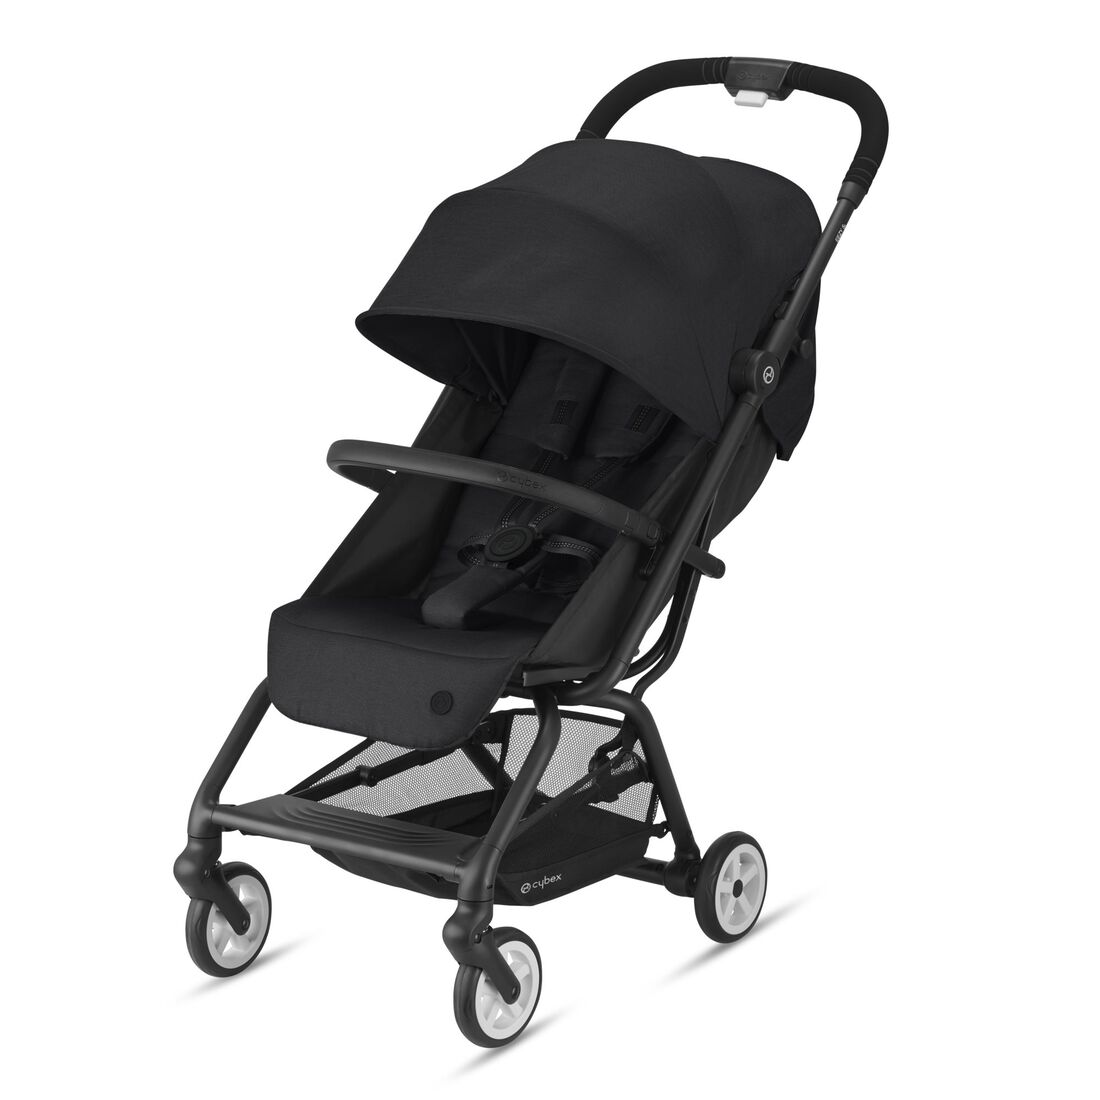 CYBEX Libelle Buggy - Adjustable legrest